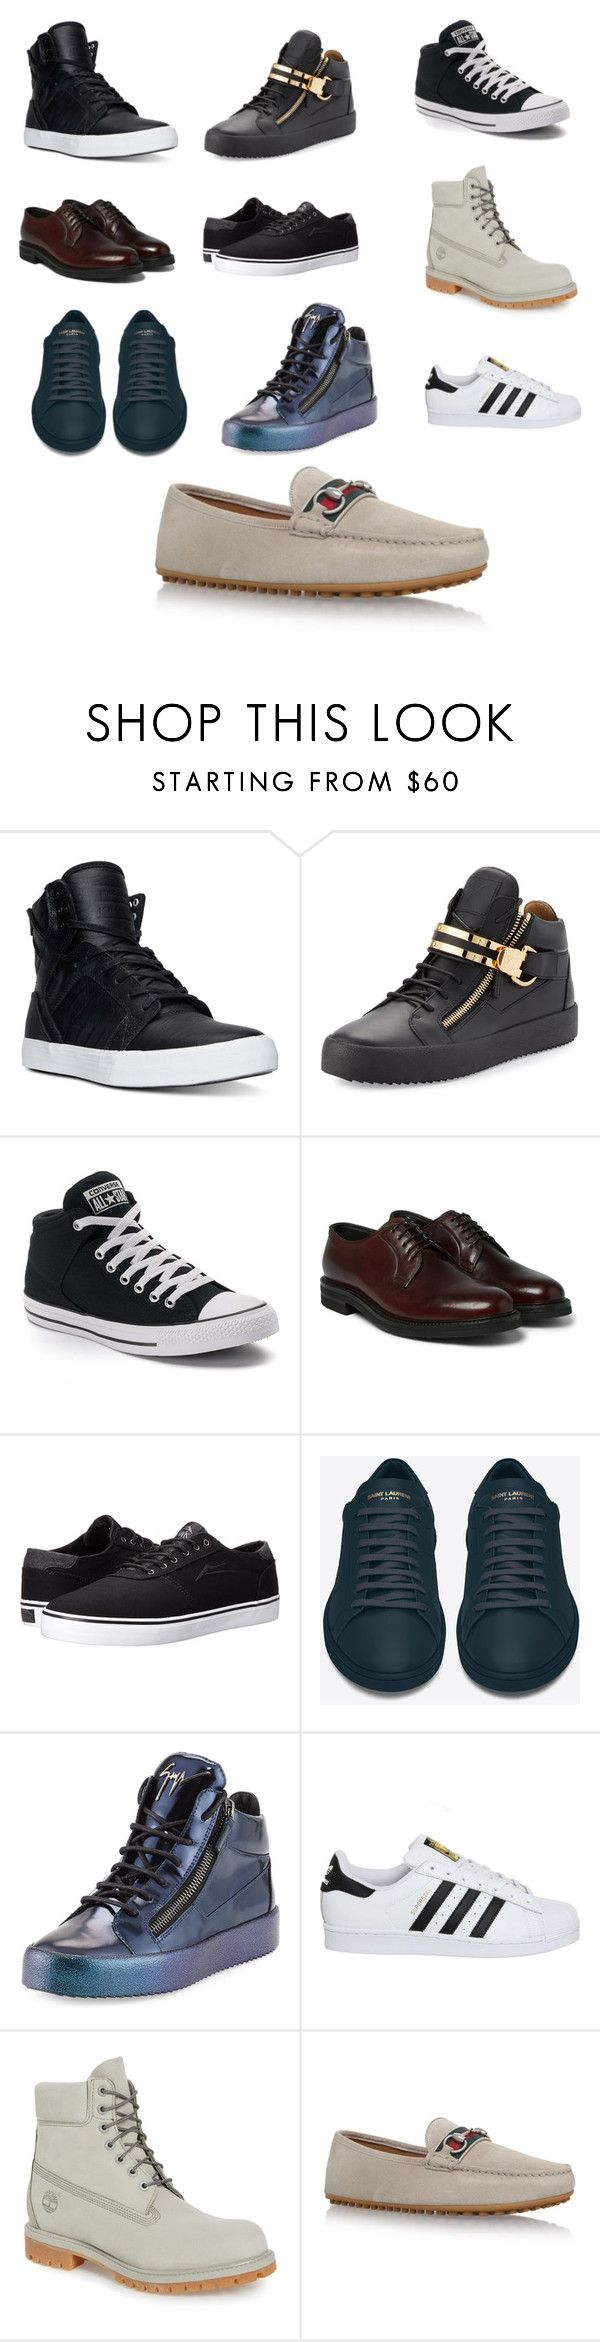 """""""FAVORITE COLLECTION"""" by beztmillzwears on Polyvore featuring Supra, Giuseppe Zanotti, Converse, Lakai, Yves Saint Laurent, adidas, Timberland, Gucci, men's fashion and menswear"""